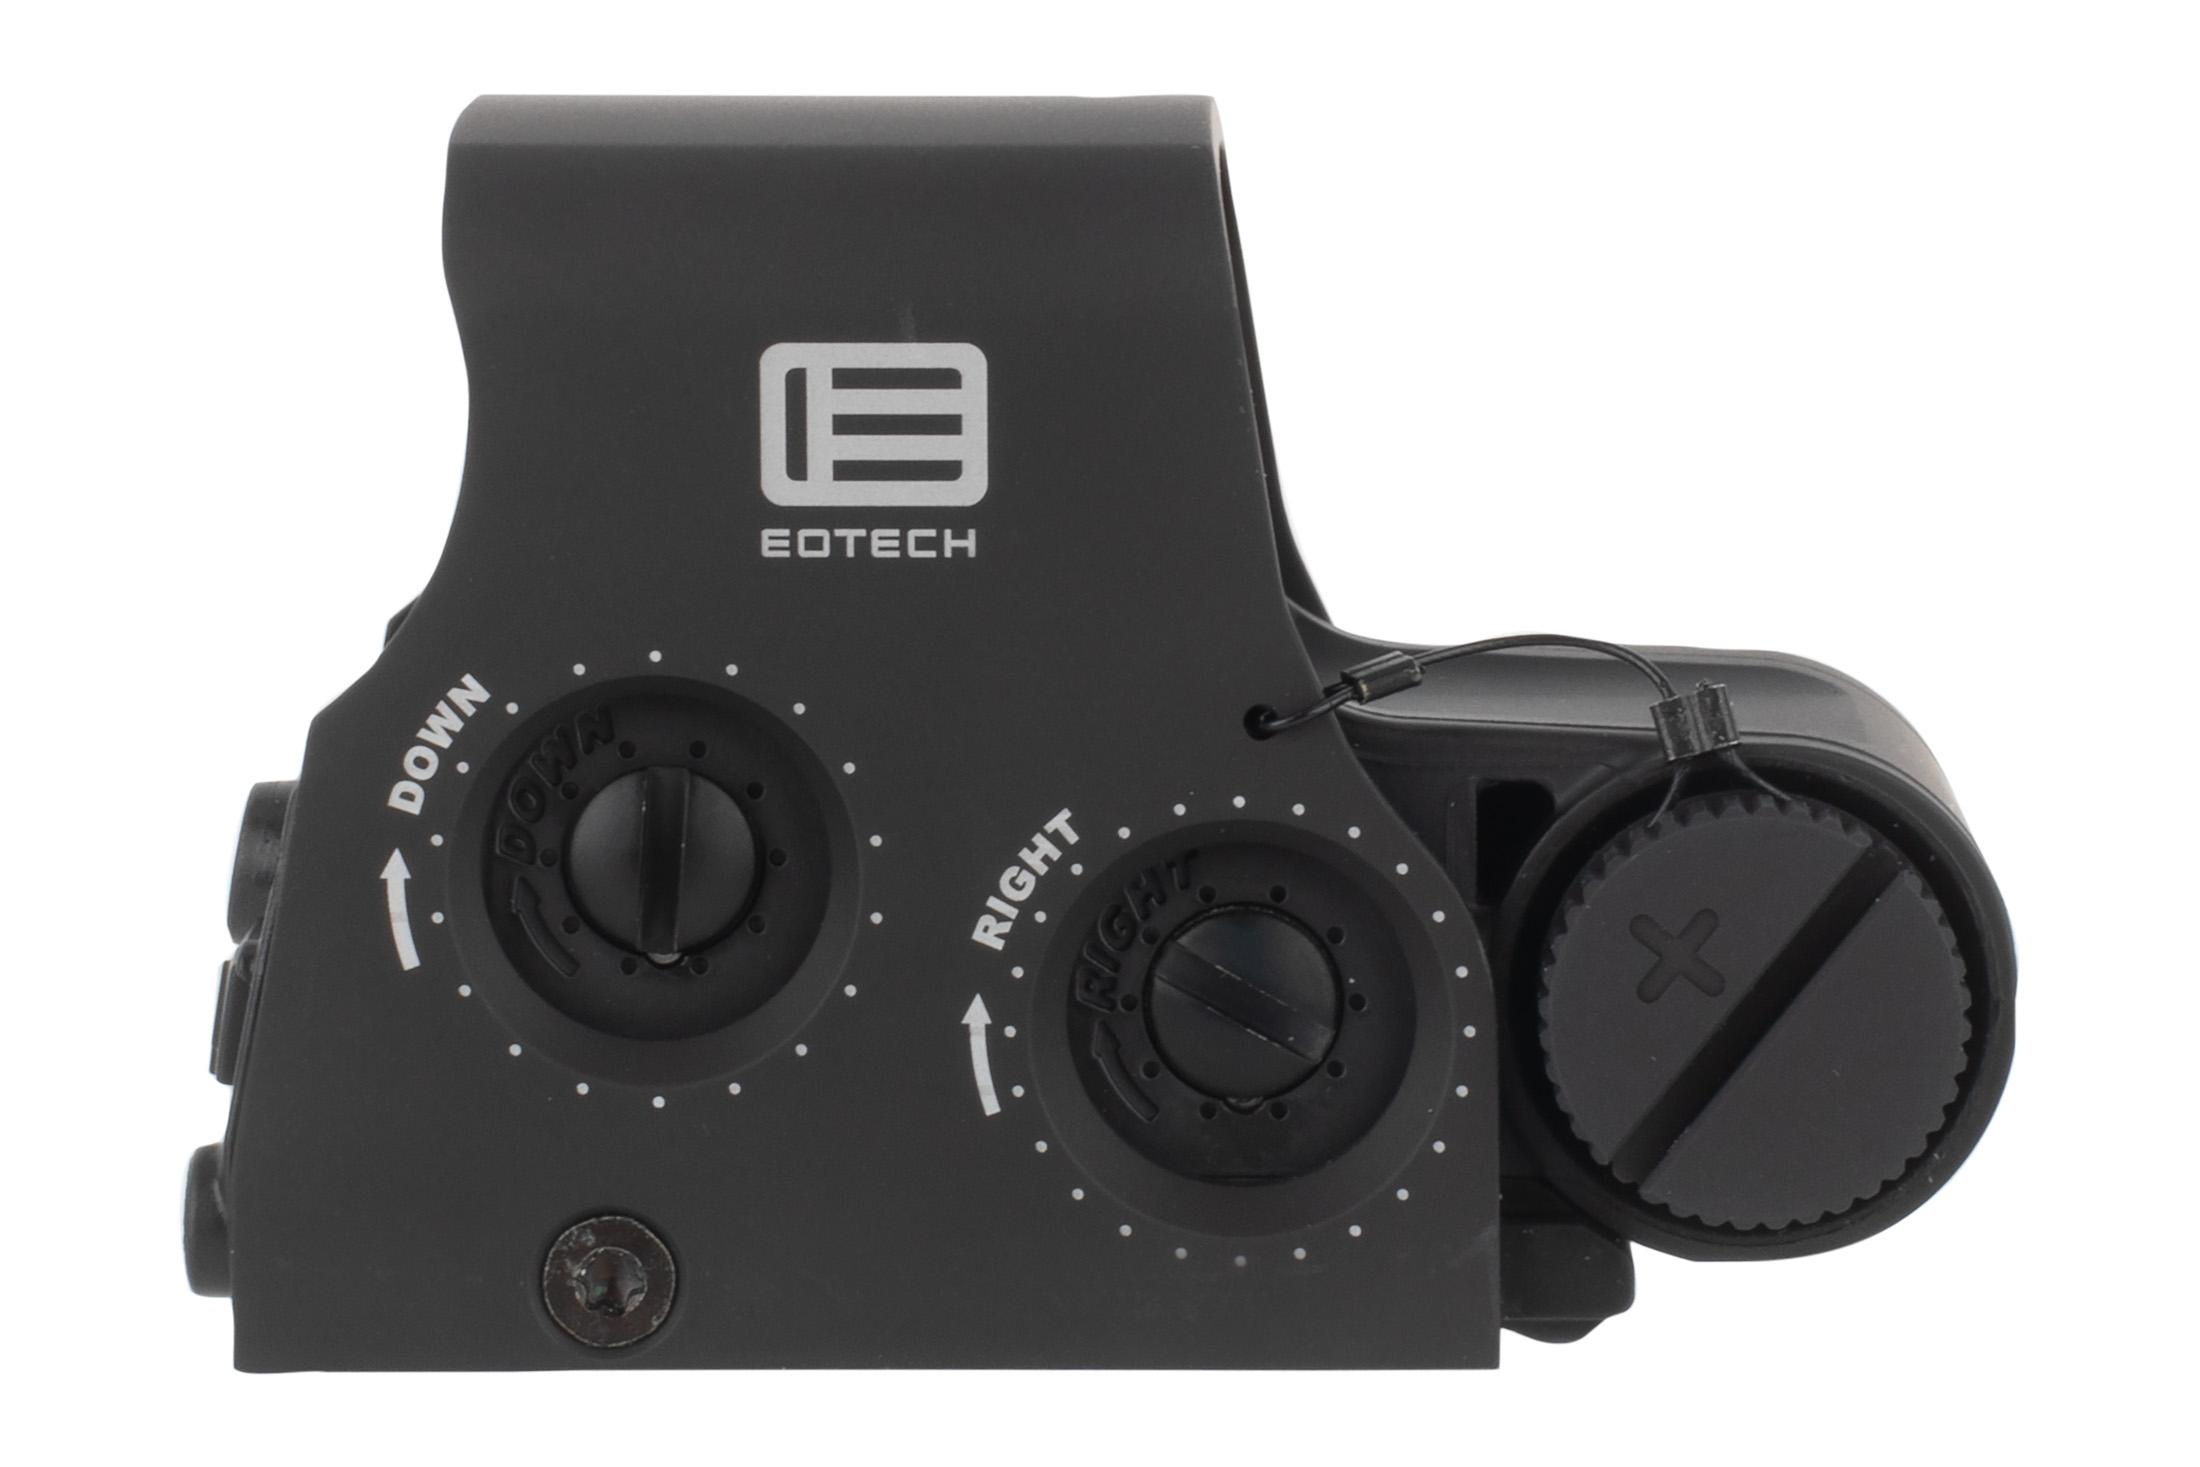 The EOTech XPS2-2 holographic sight features elevation and windage adjustments on the right side